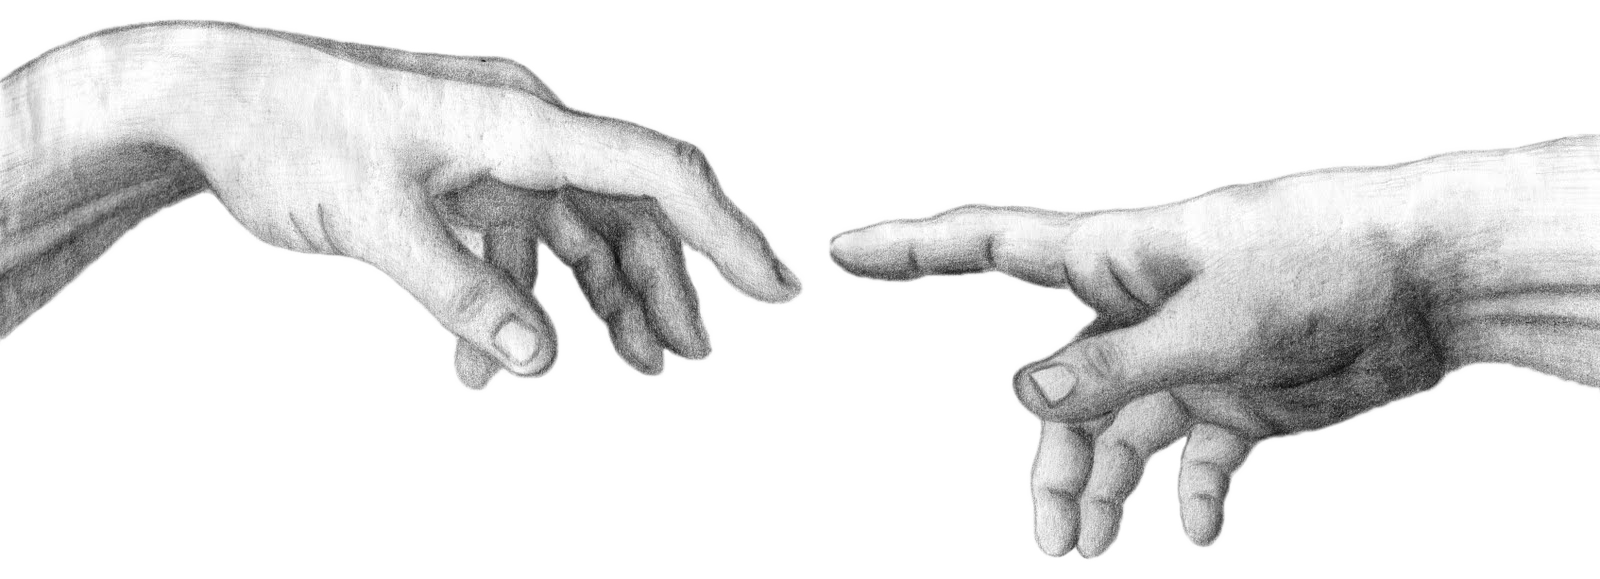 Hand of god png. Sistine chapel ceiling hands